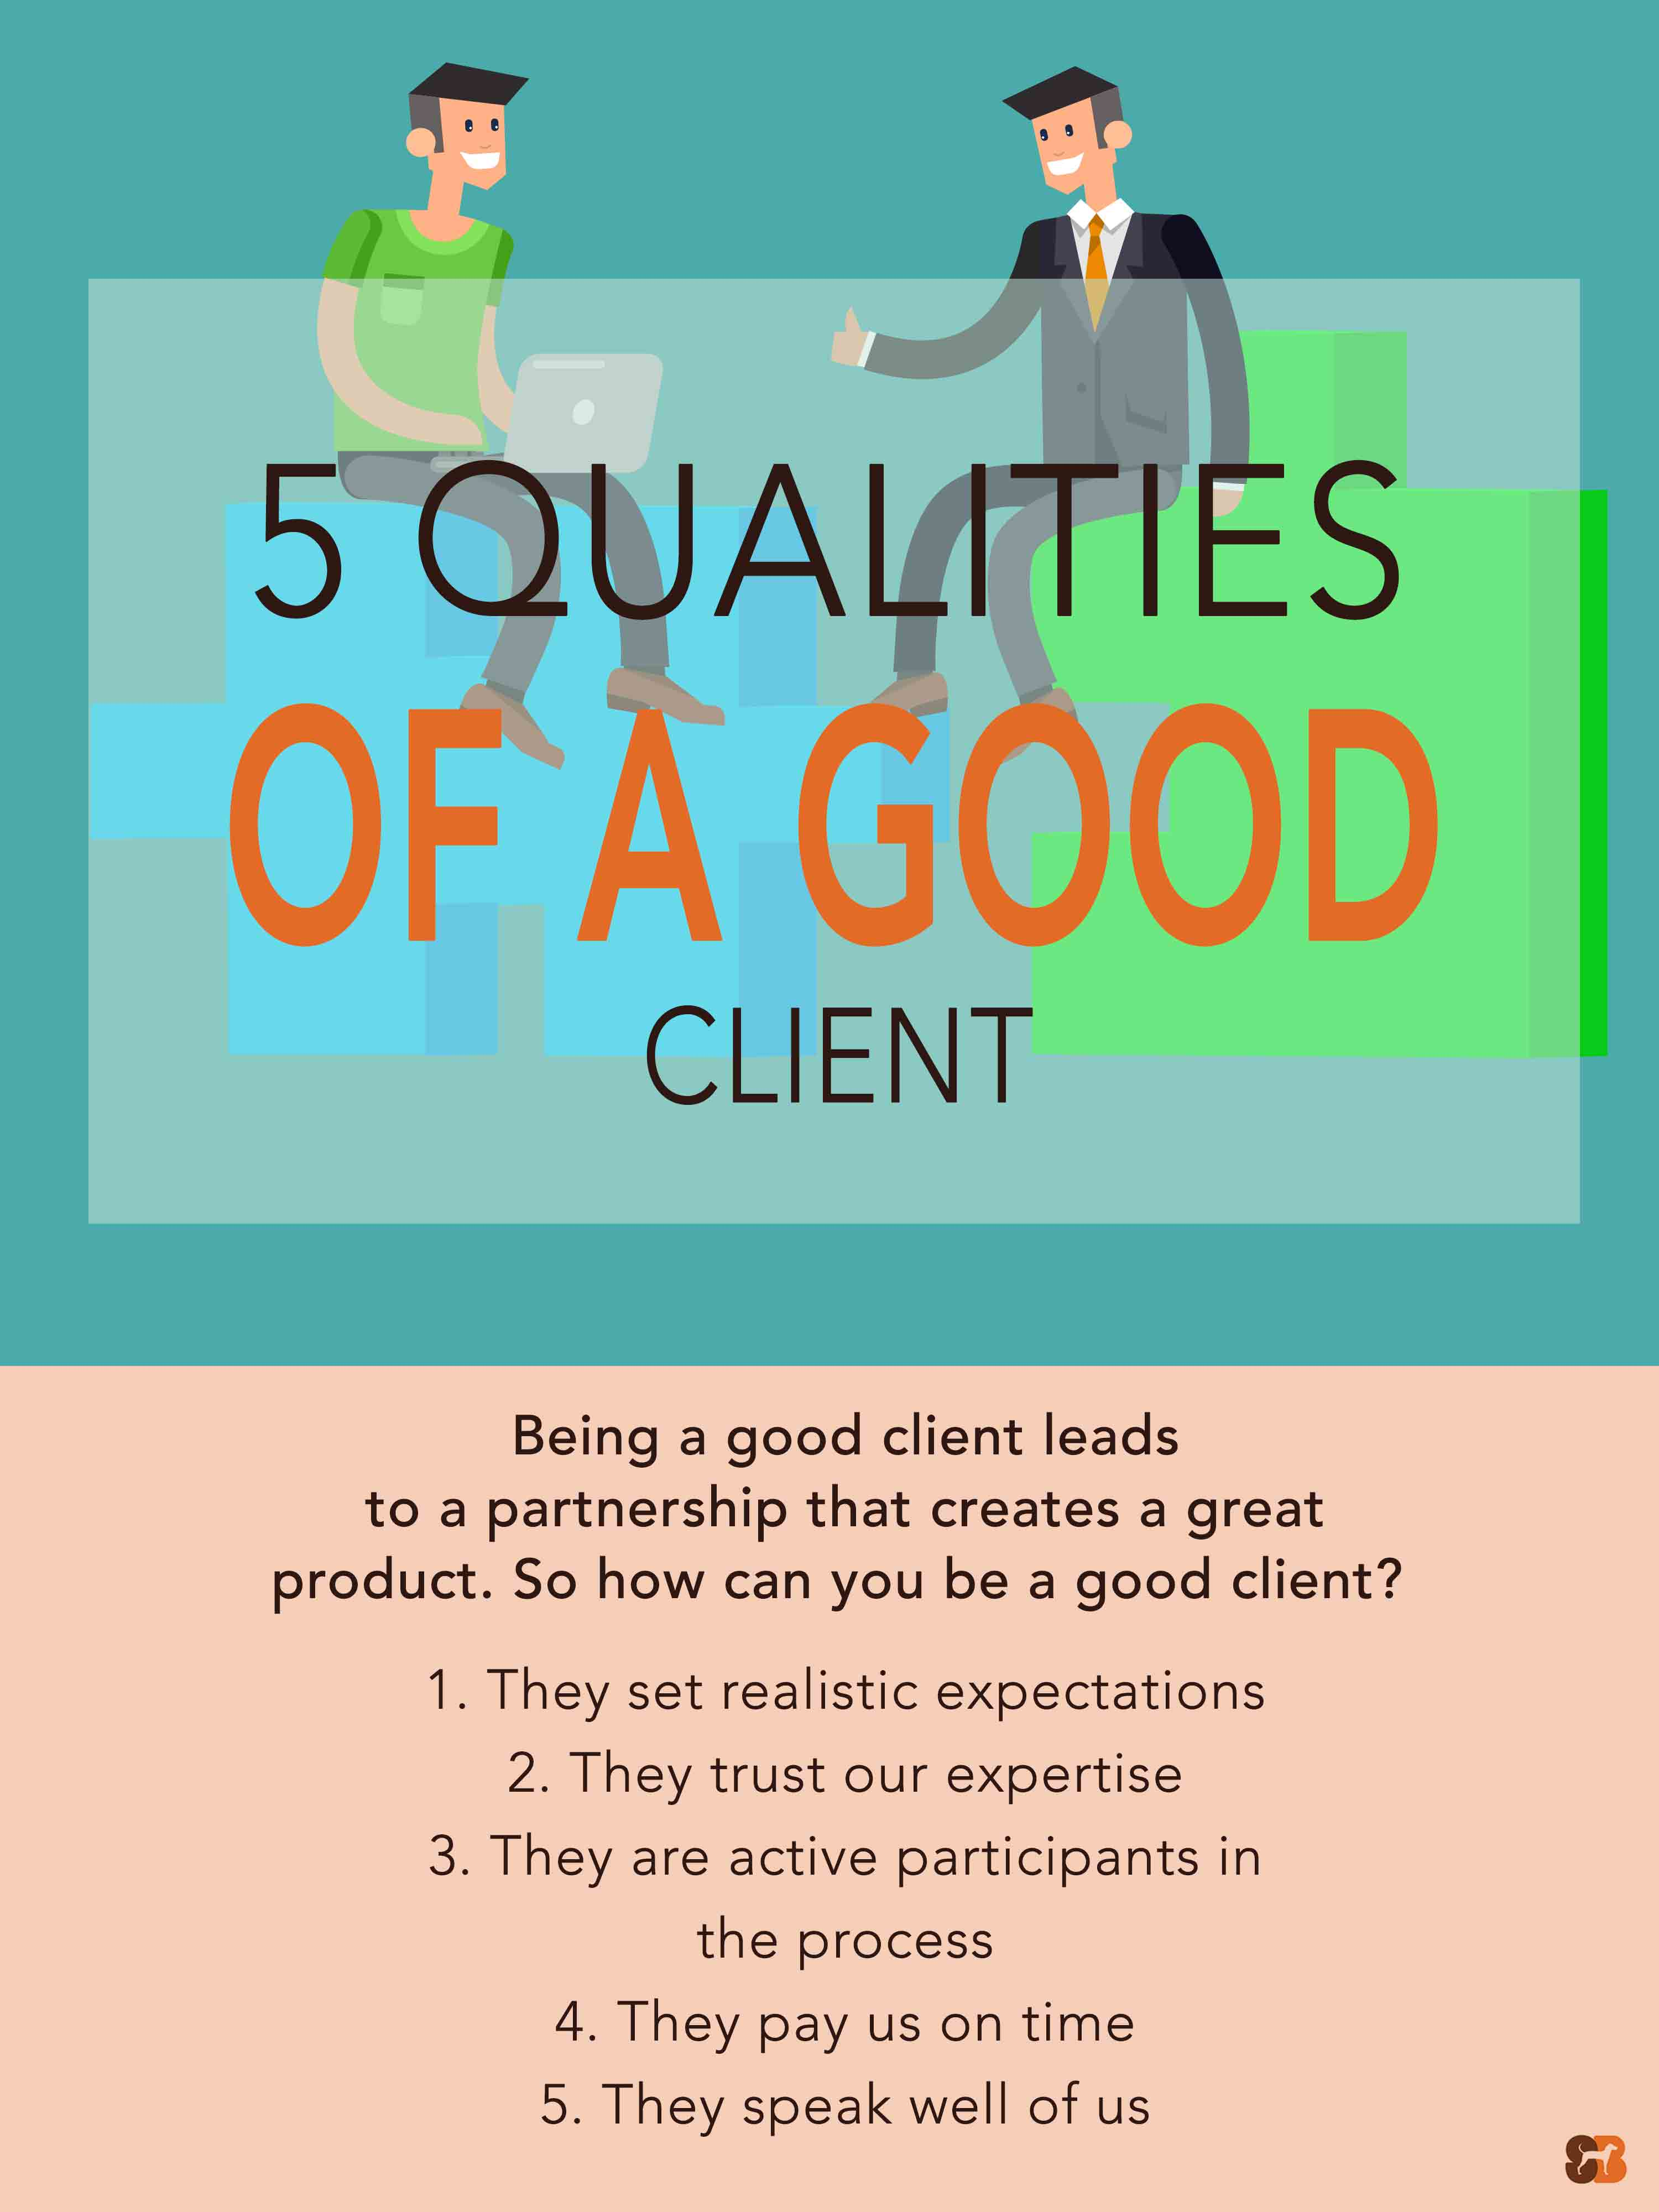 5-qualties-of-being-a-good-client-fi-for-pinterest